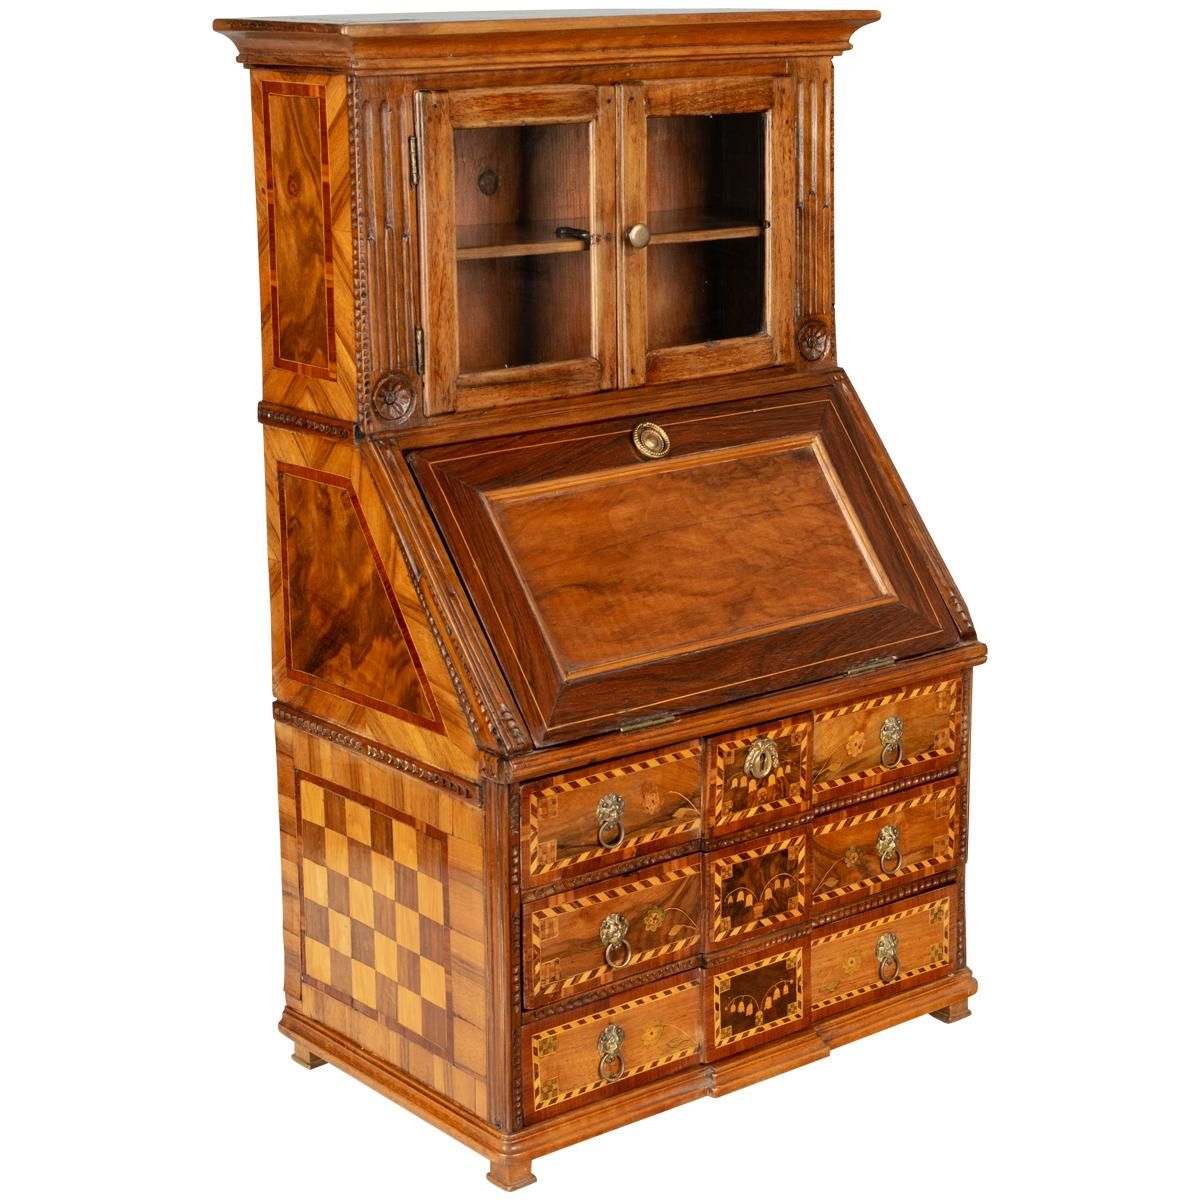 18th Century French Louis XVI Miniature Marquetry Secretaire or Desk